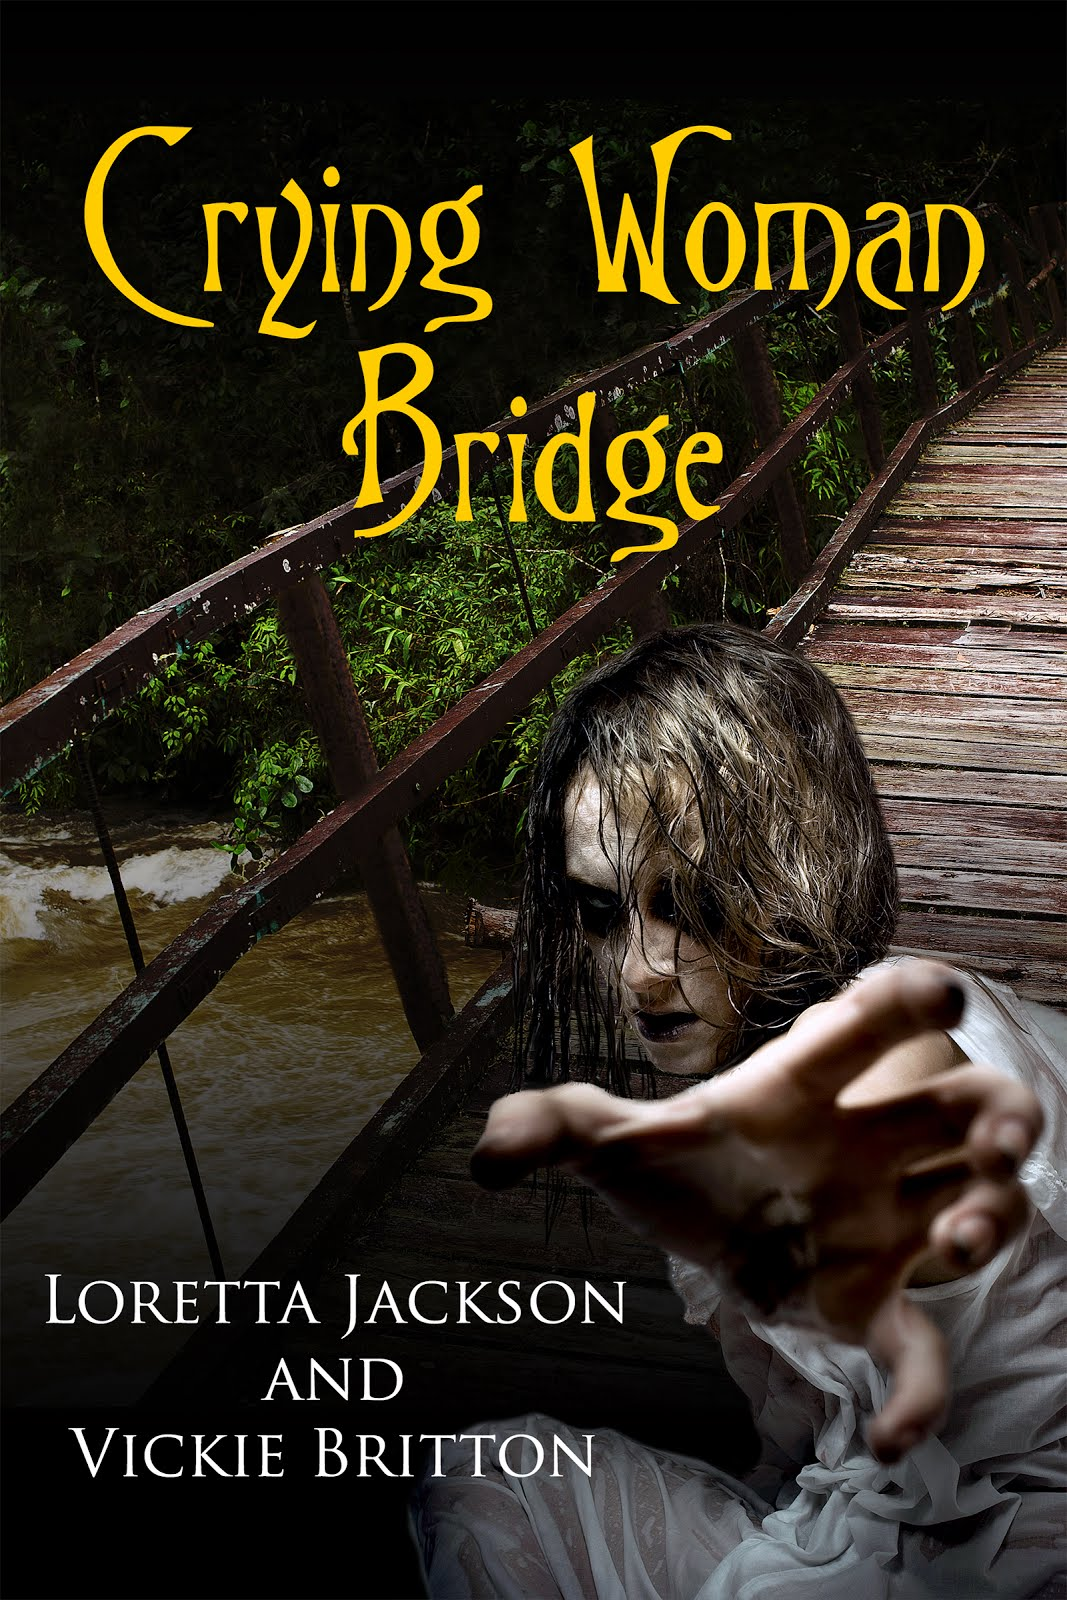 CRYING WOMAN BRIDGE